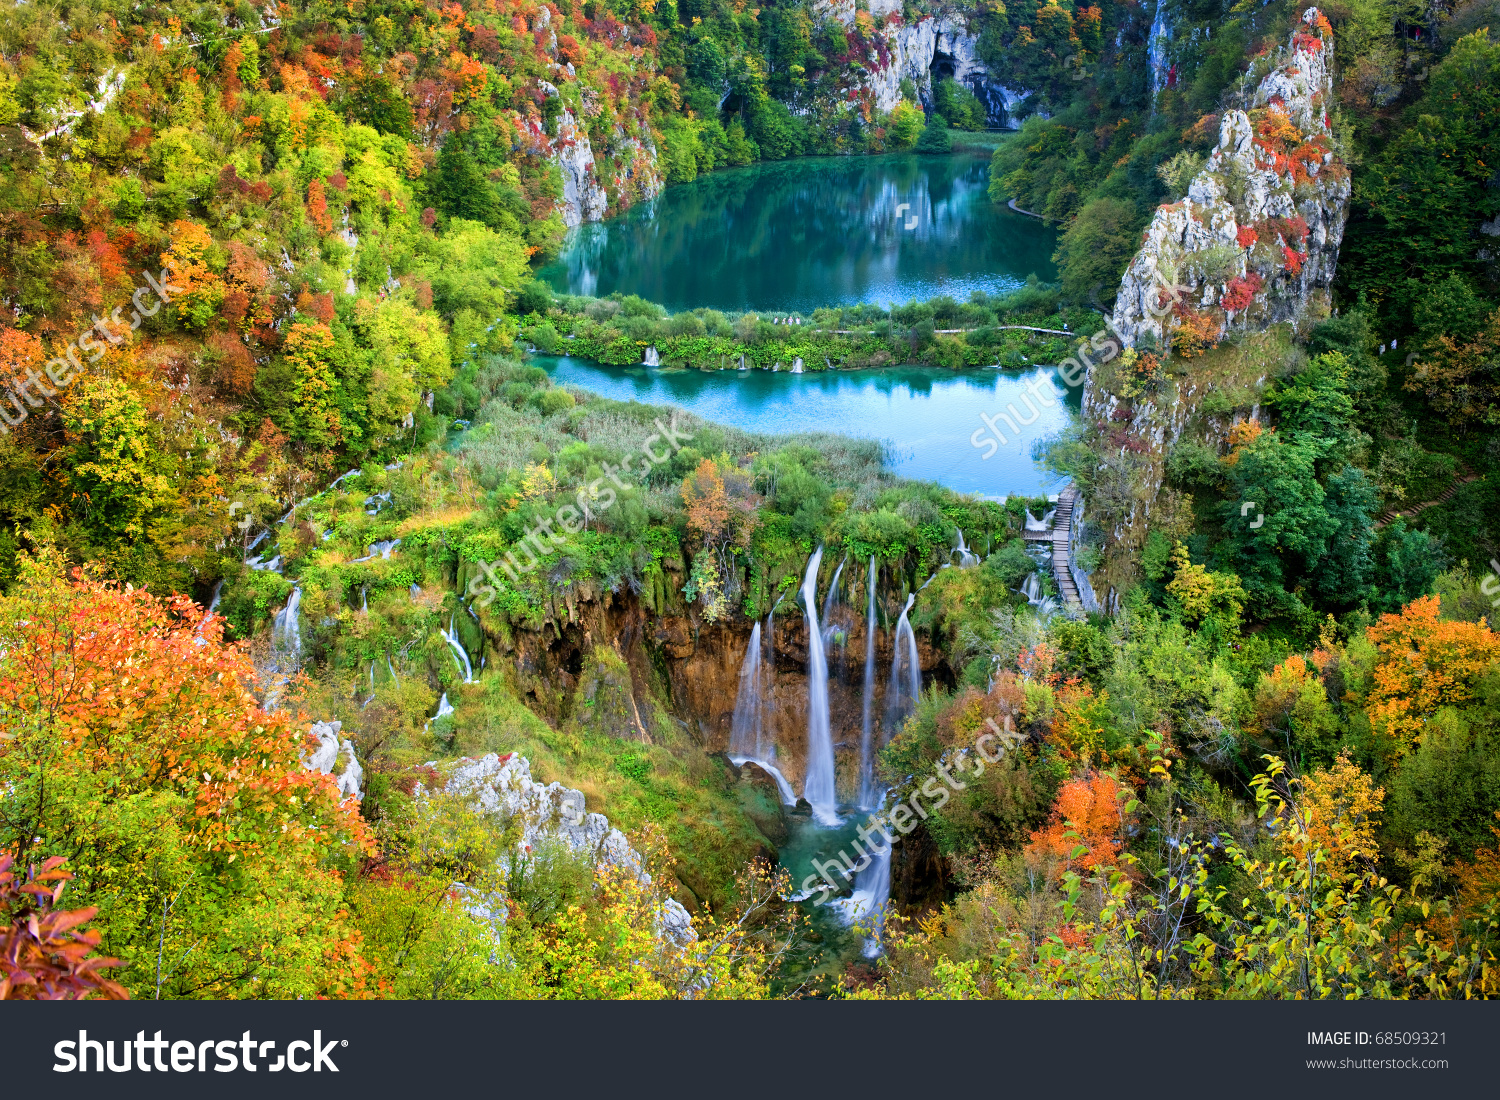 Plitvice Lakes National Park clipart #13, Download drawings